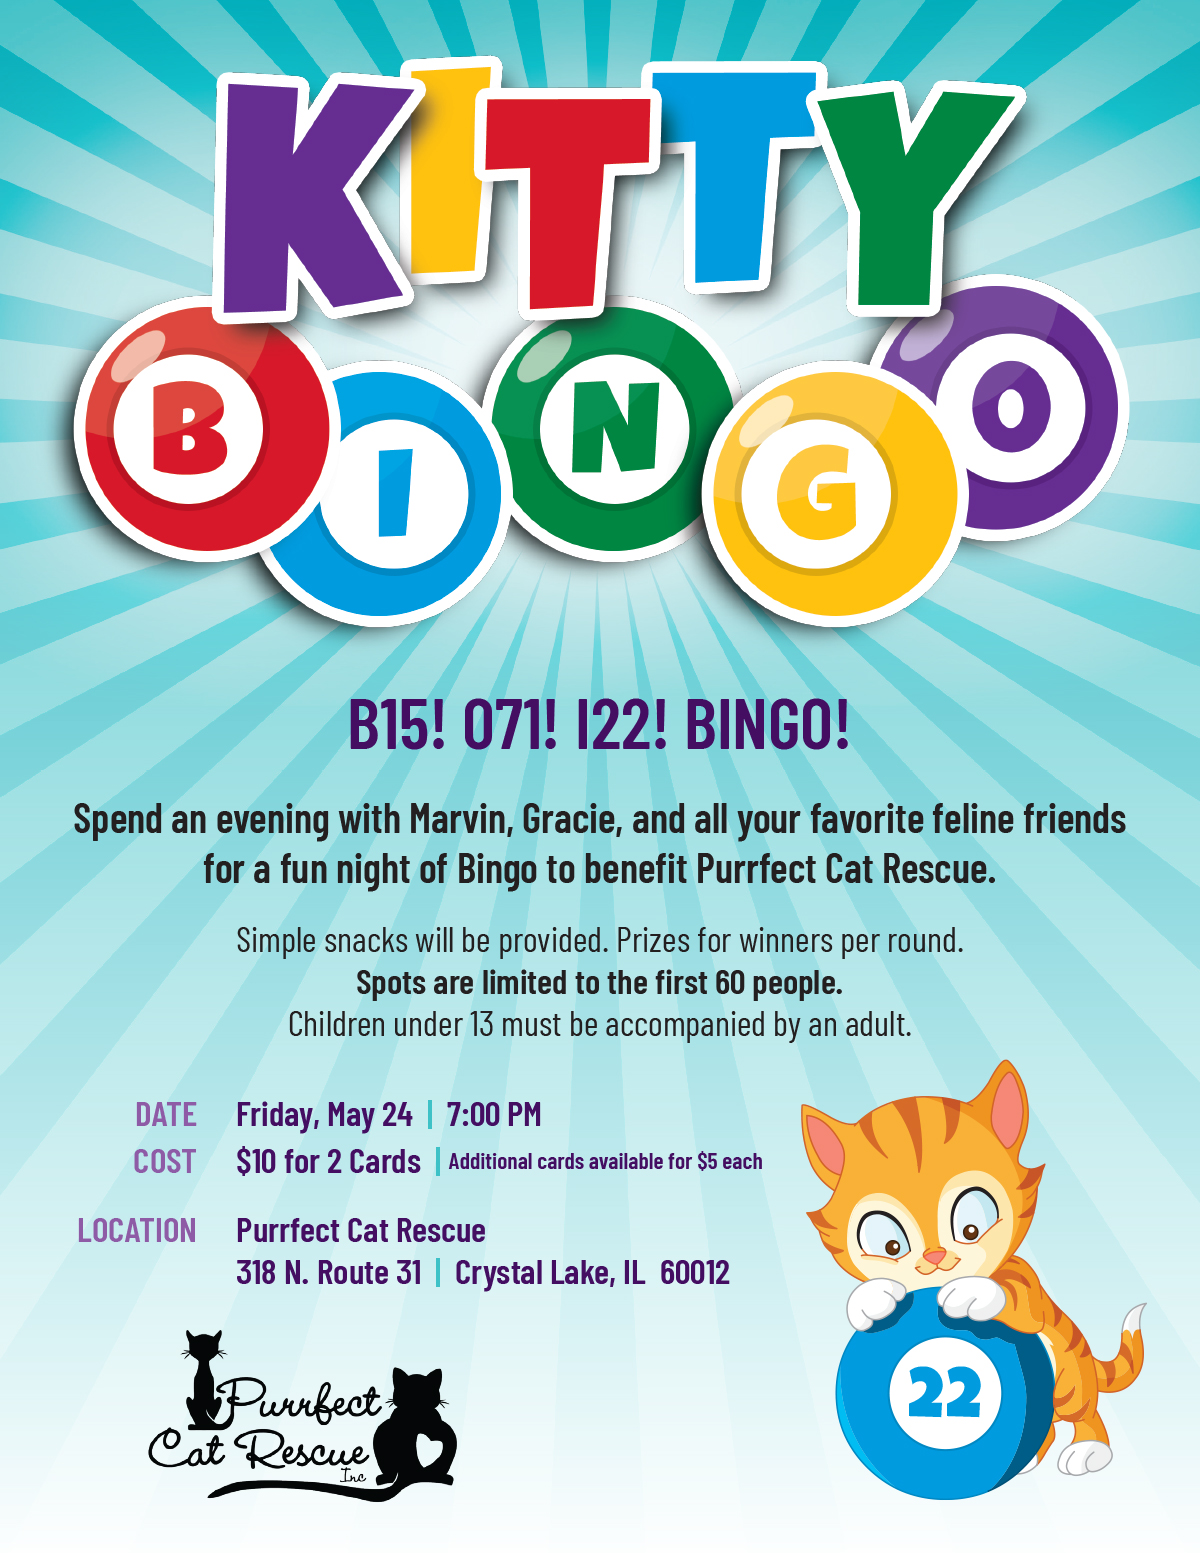 kitty_bingo_flyer_052419_1200x1553.jpg